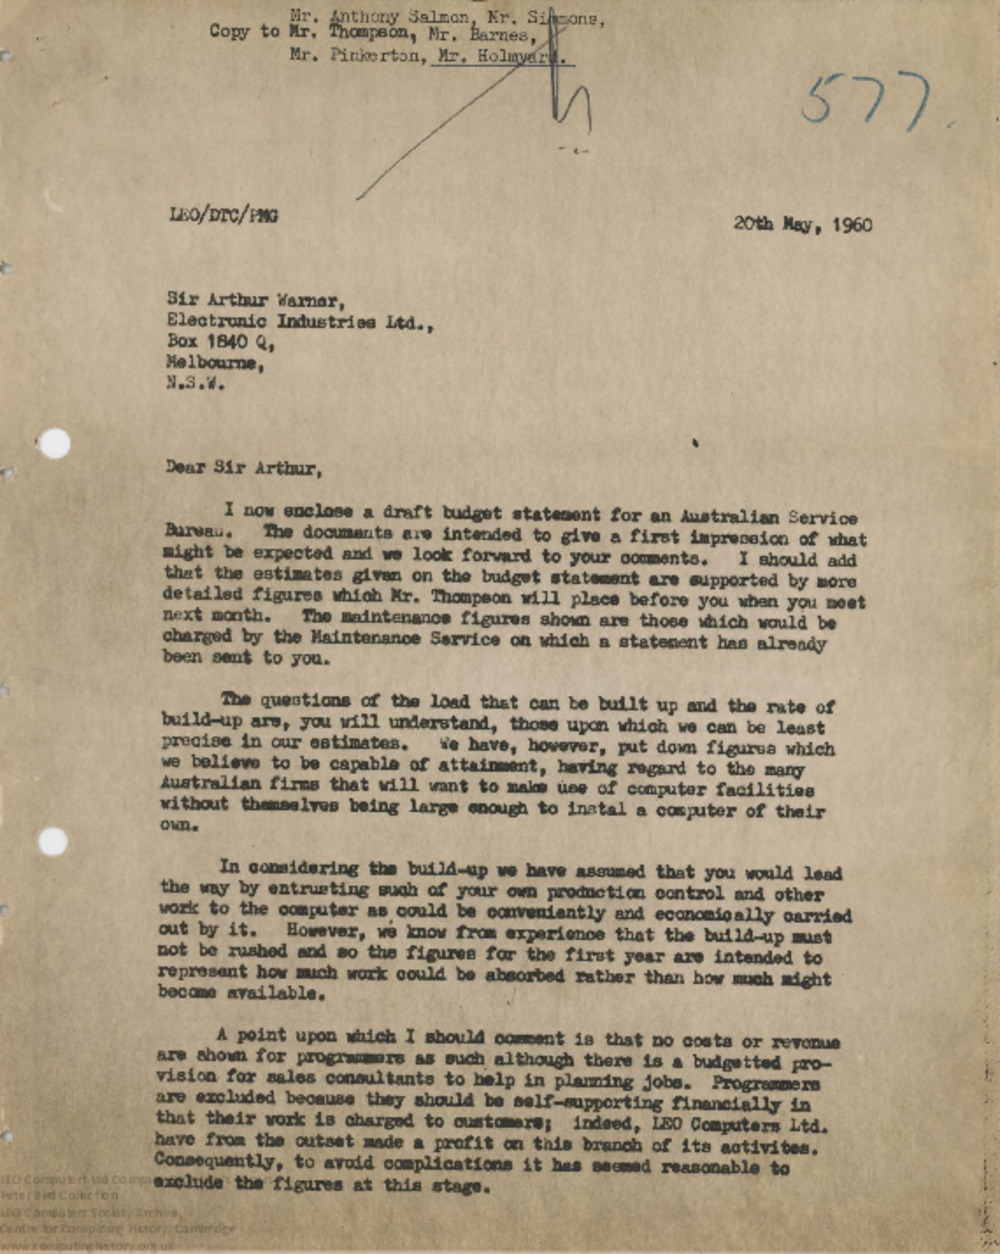 Article: 62843 Draft Budget Statement for an Australian Computer Service Bureau, 20th May 1960